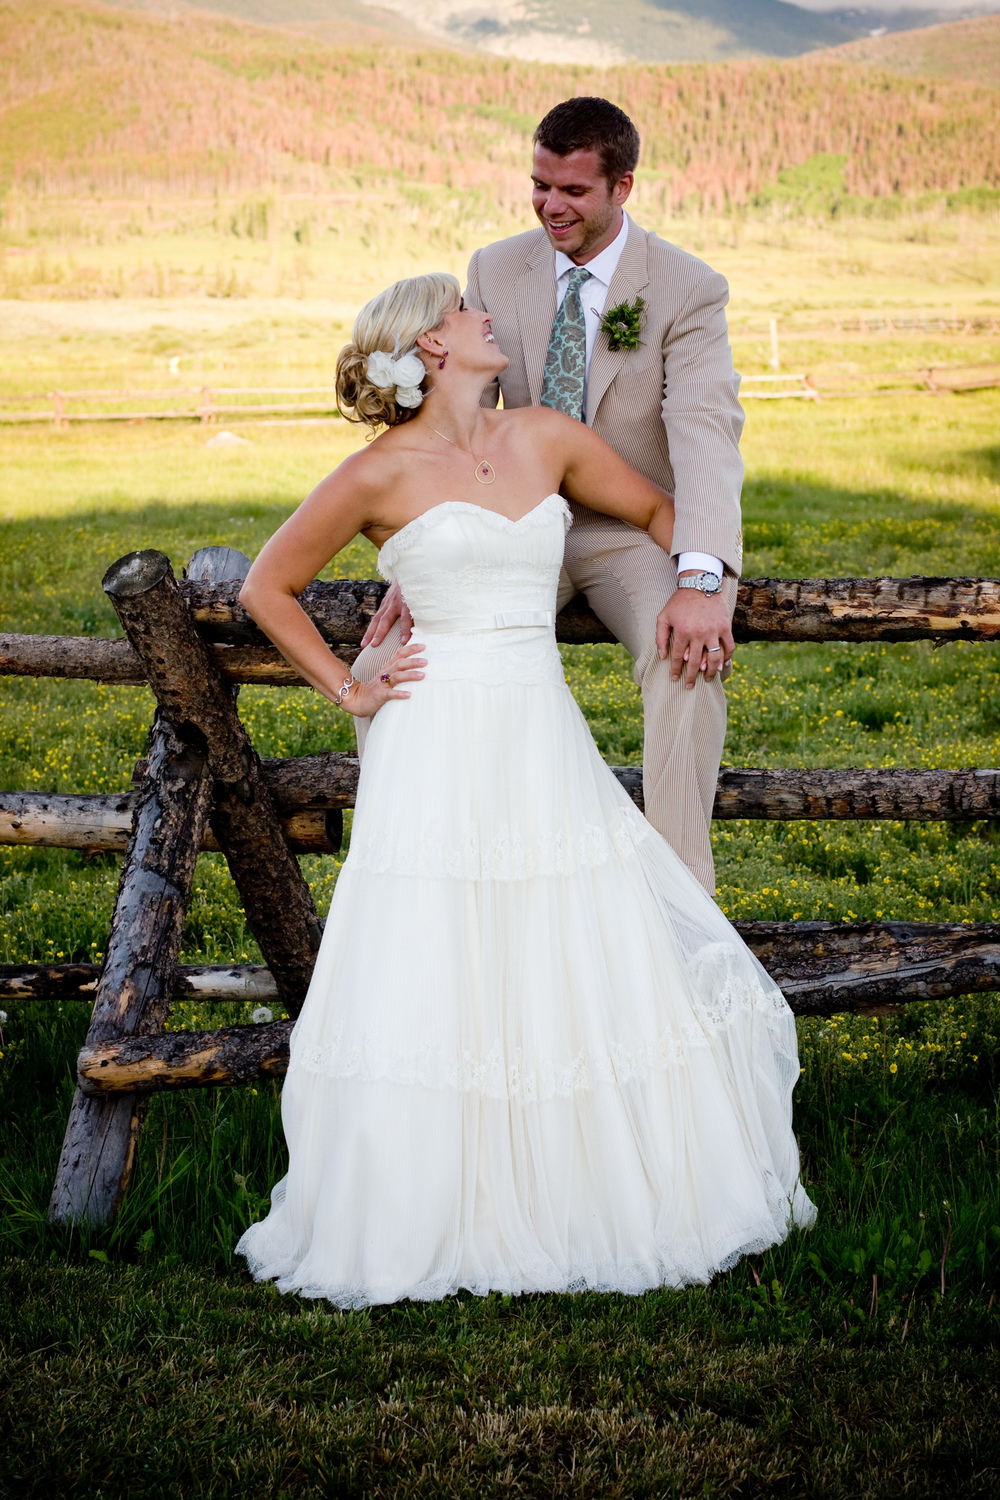 Devils_Thumb_Ranch_Wedding_048.JPG